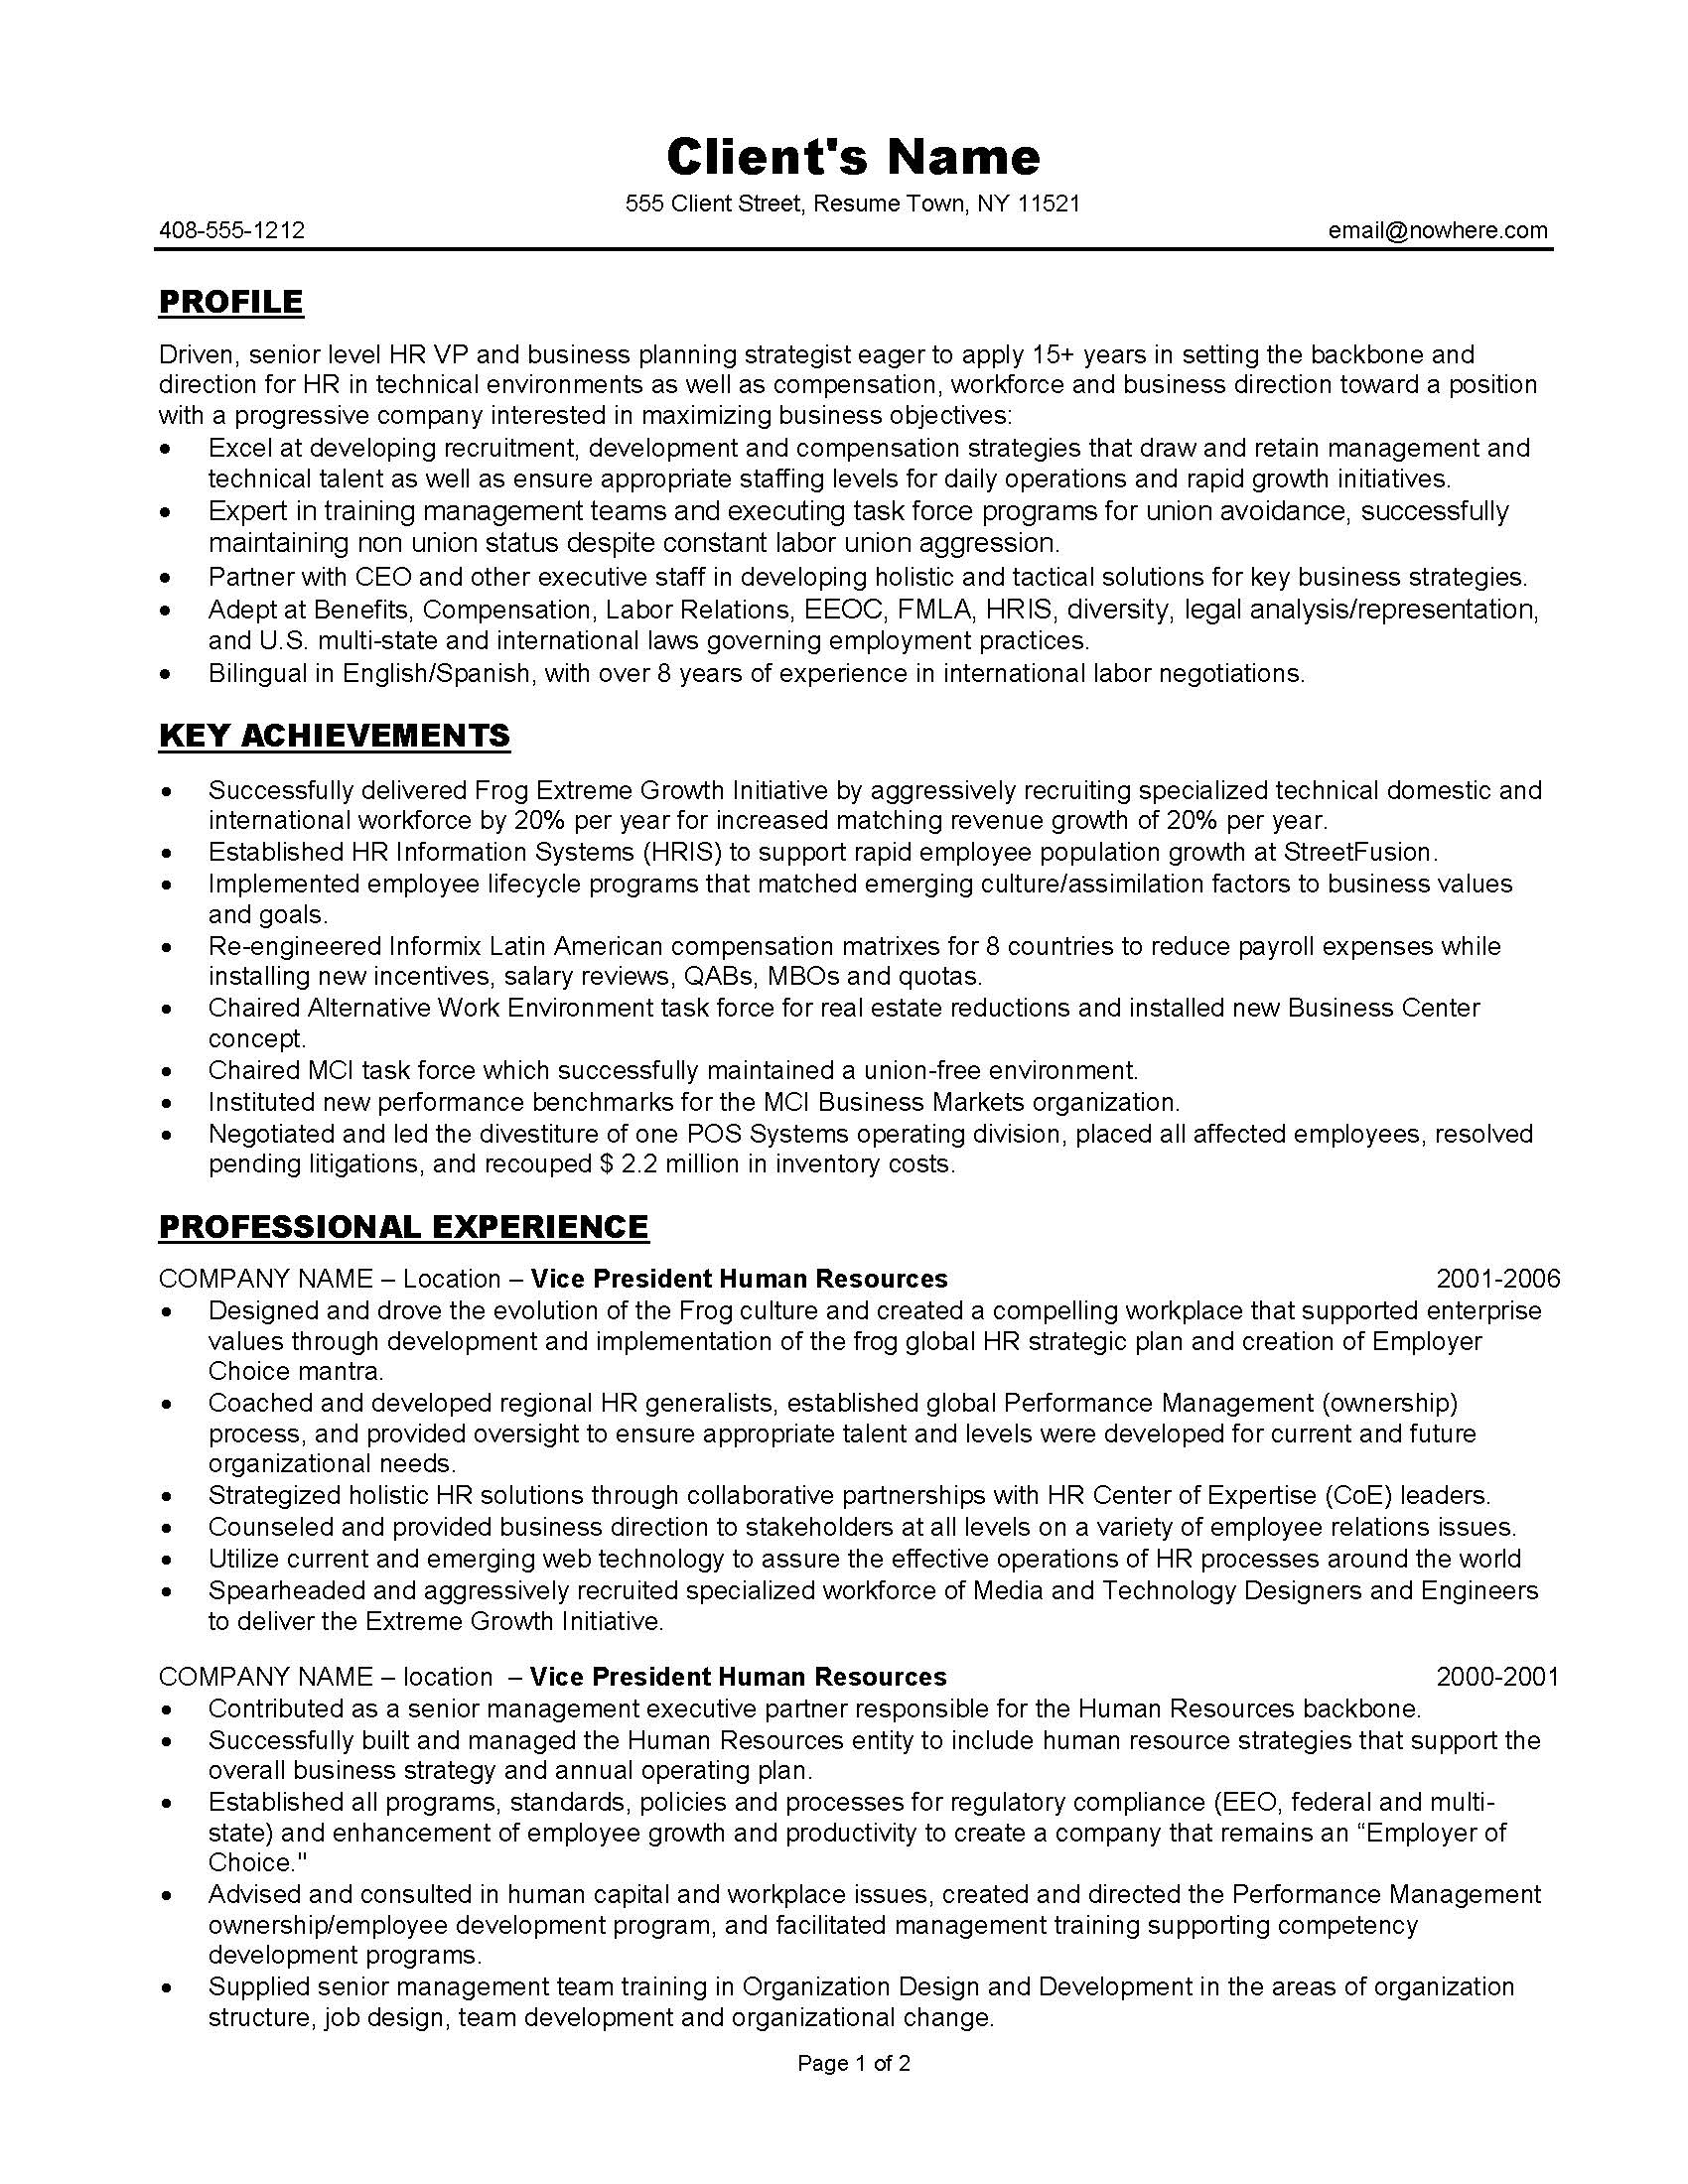 HR management resume sample